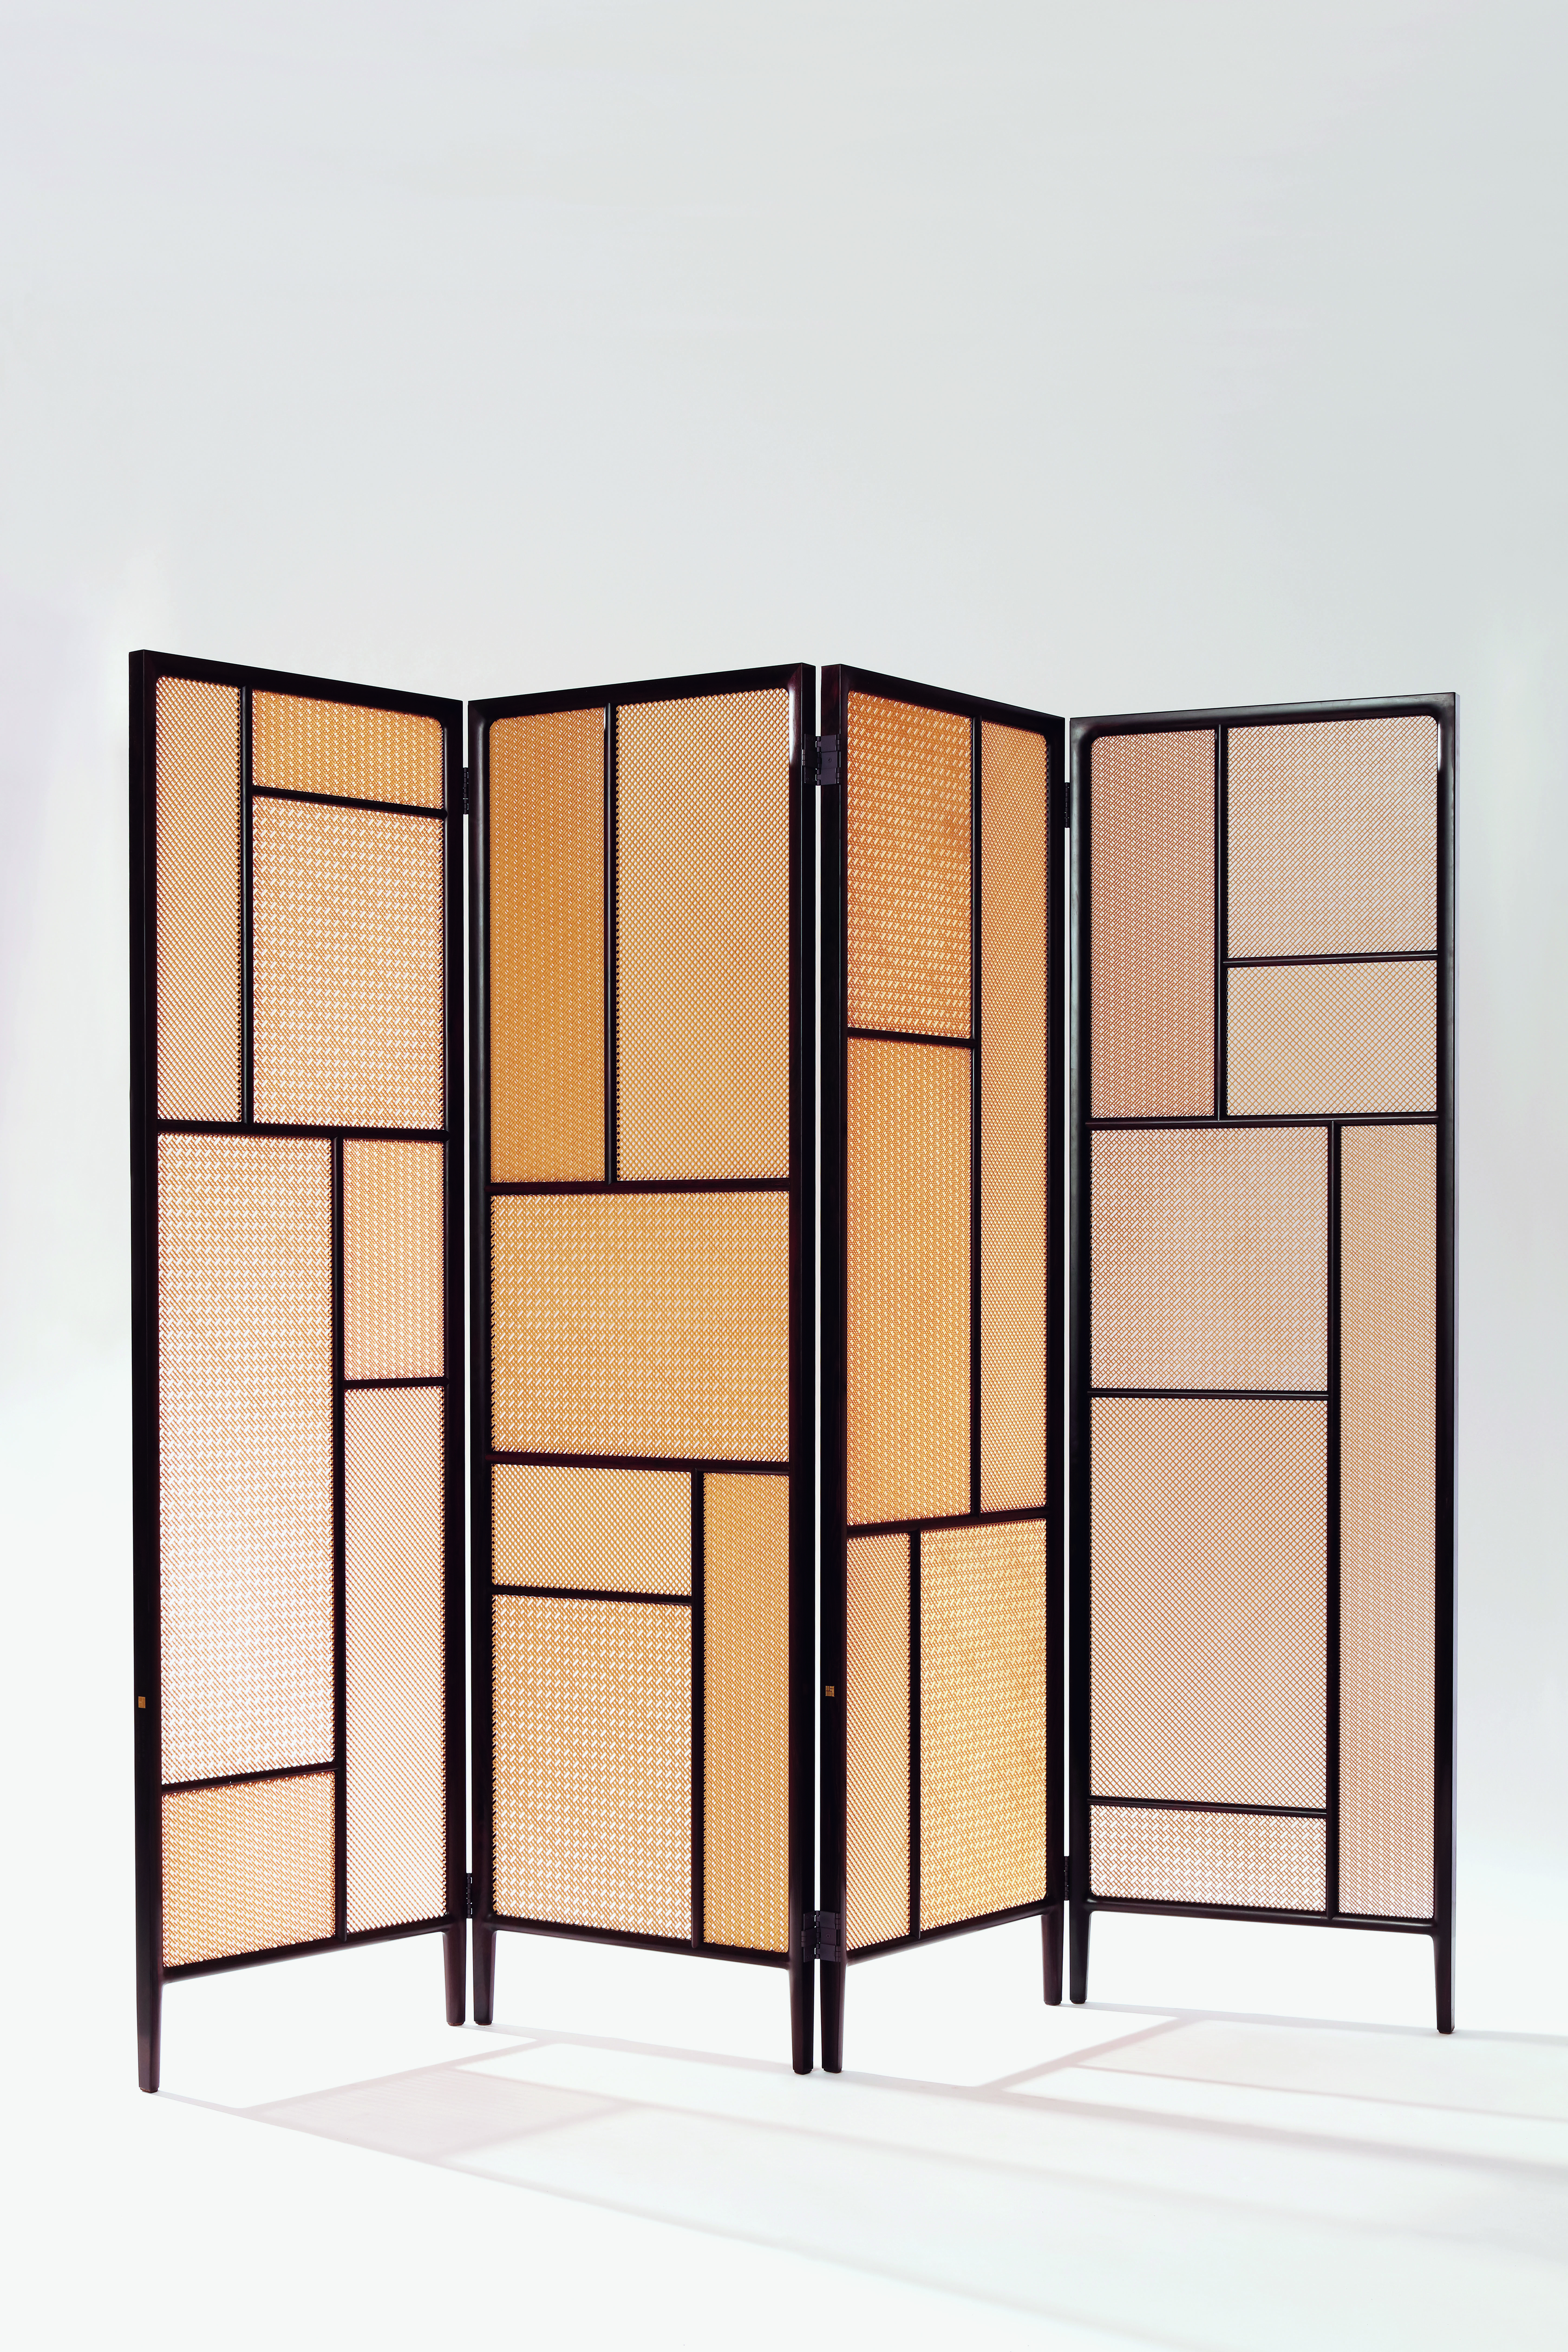 Twilight Bamboo Panelled Screen by in-house design team for Shang Xia, 2016